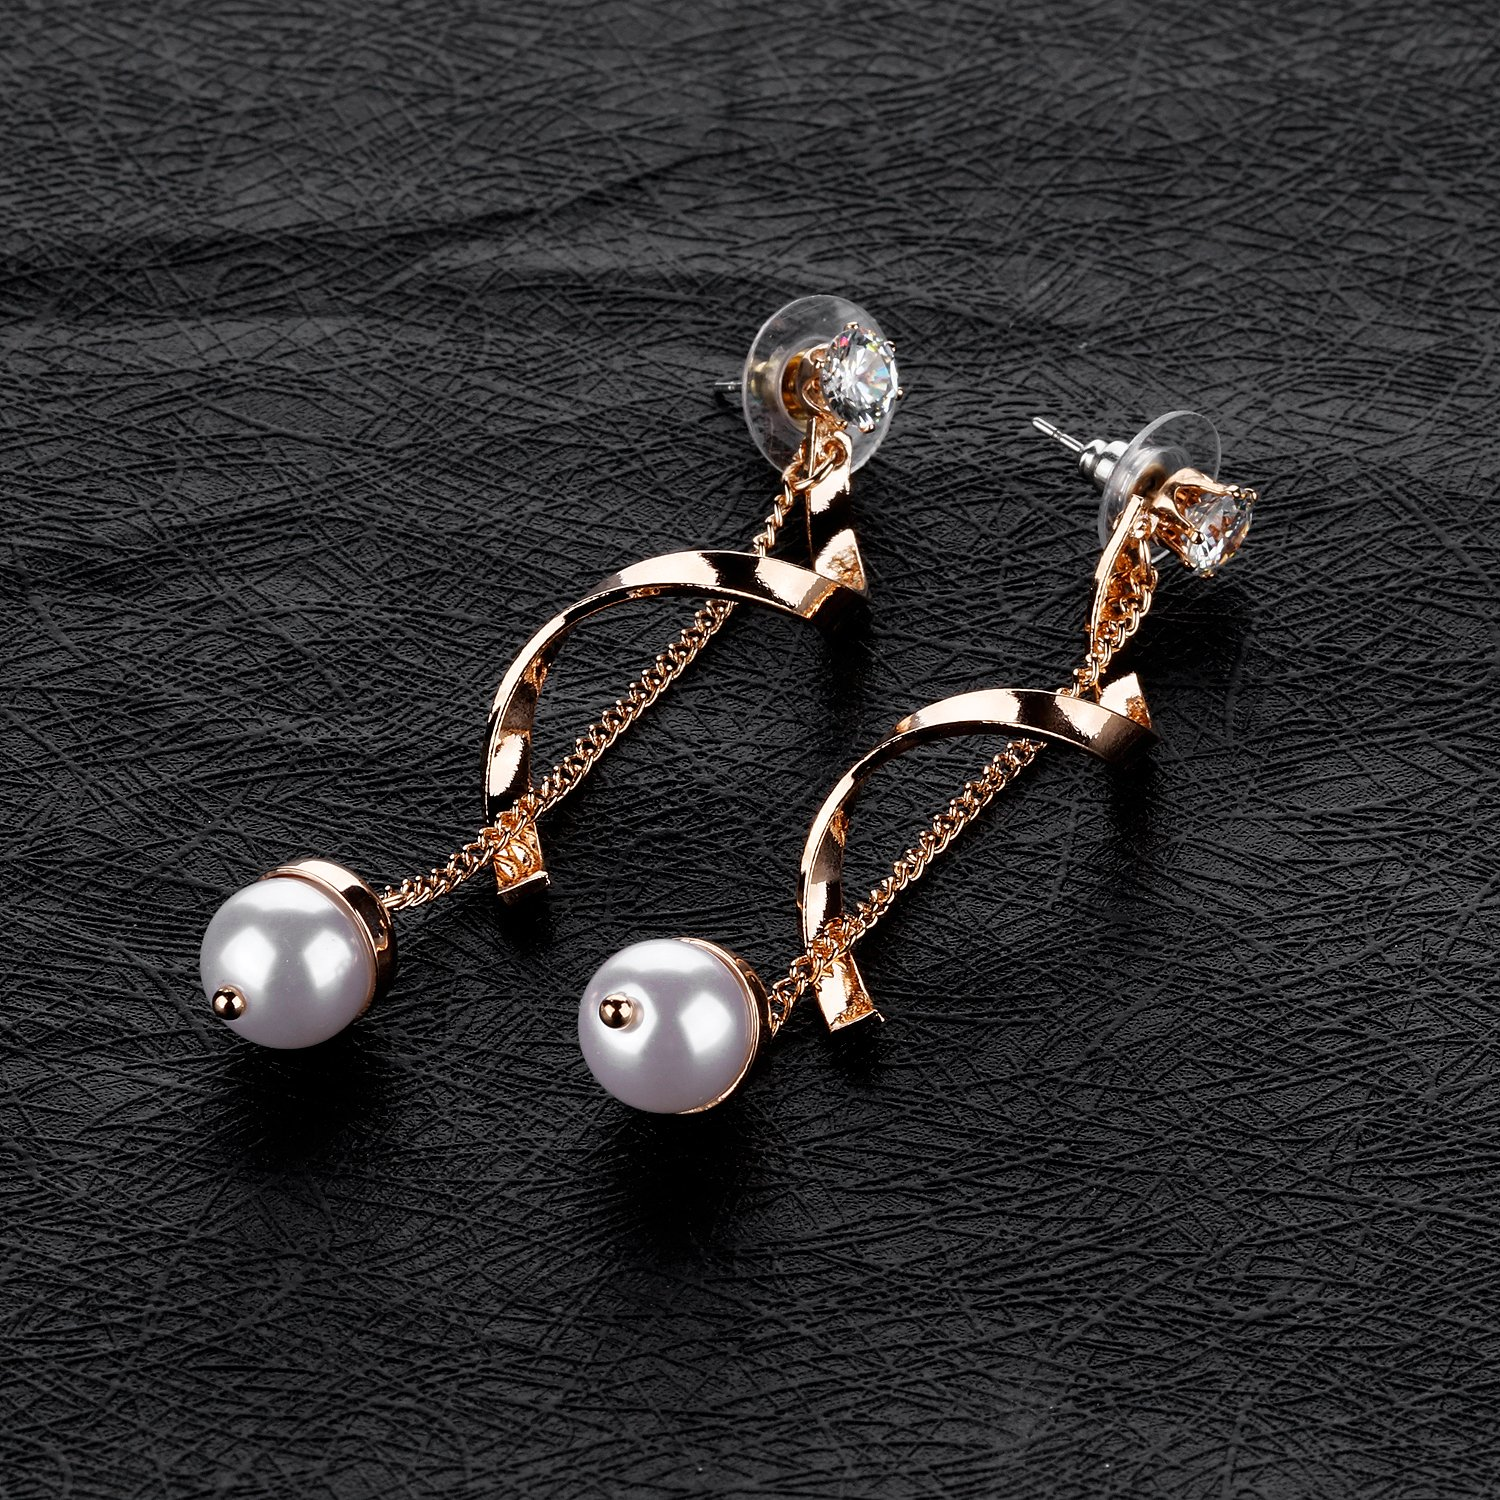 LOHOME Fashion Earrings Silver//Rose Gold Tone Spiral Wound Pearls Diamonds Charm Studs Earring for Womens Girls